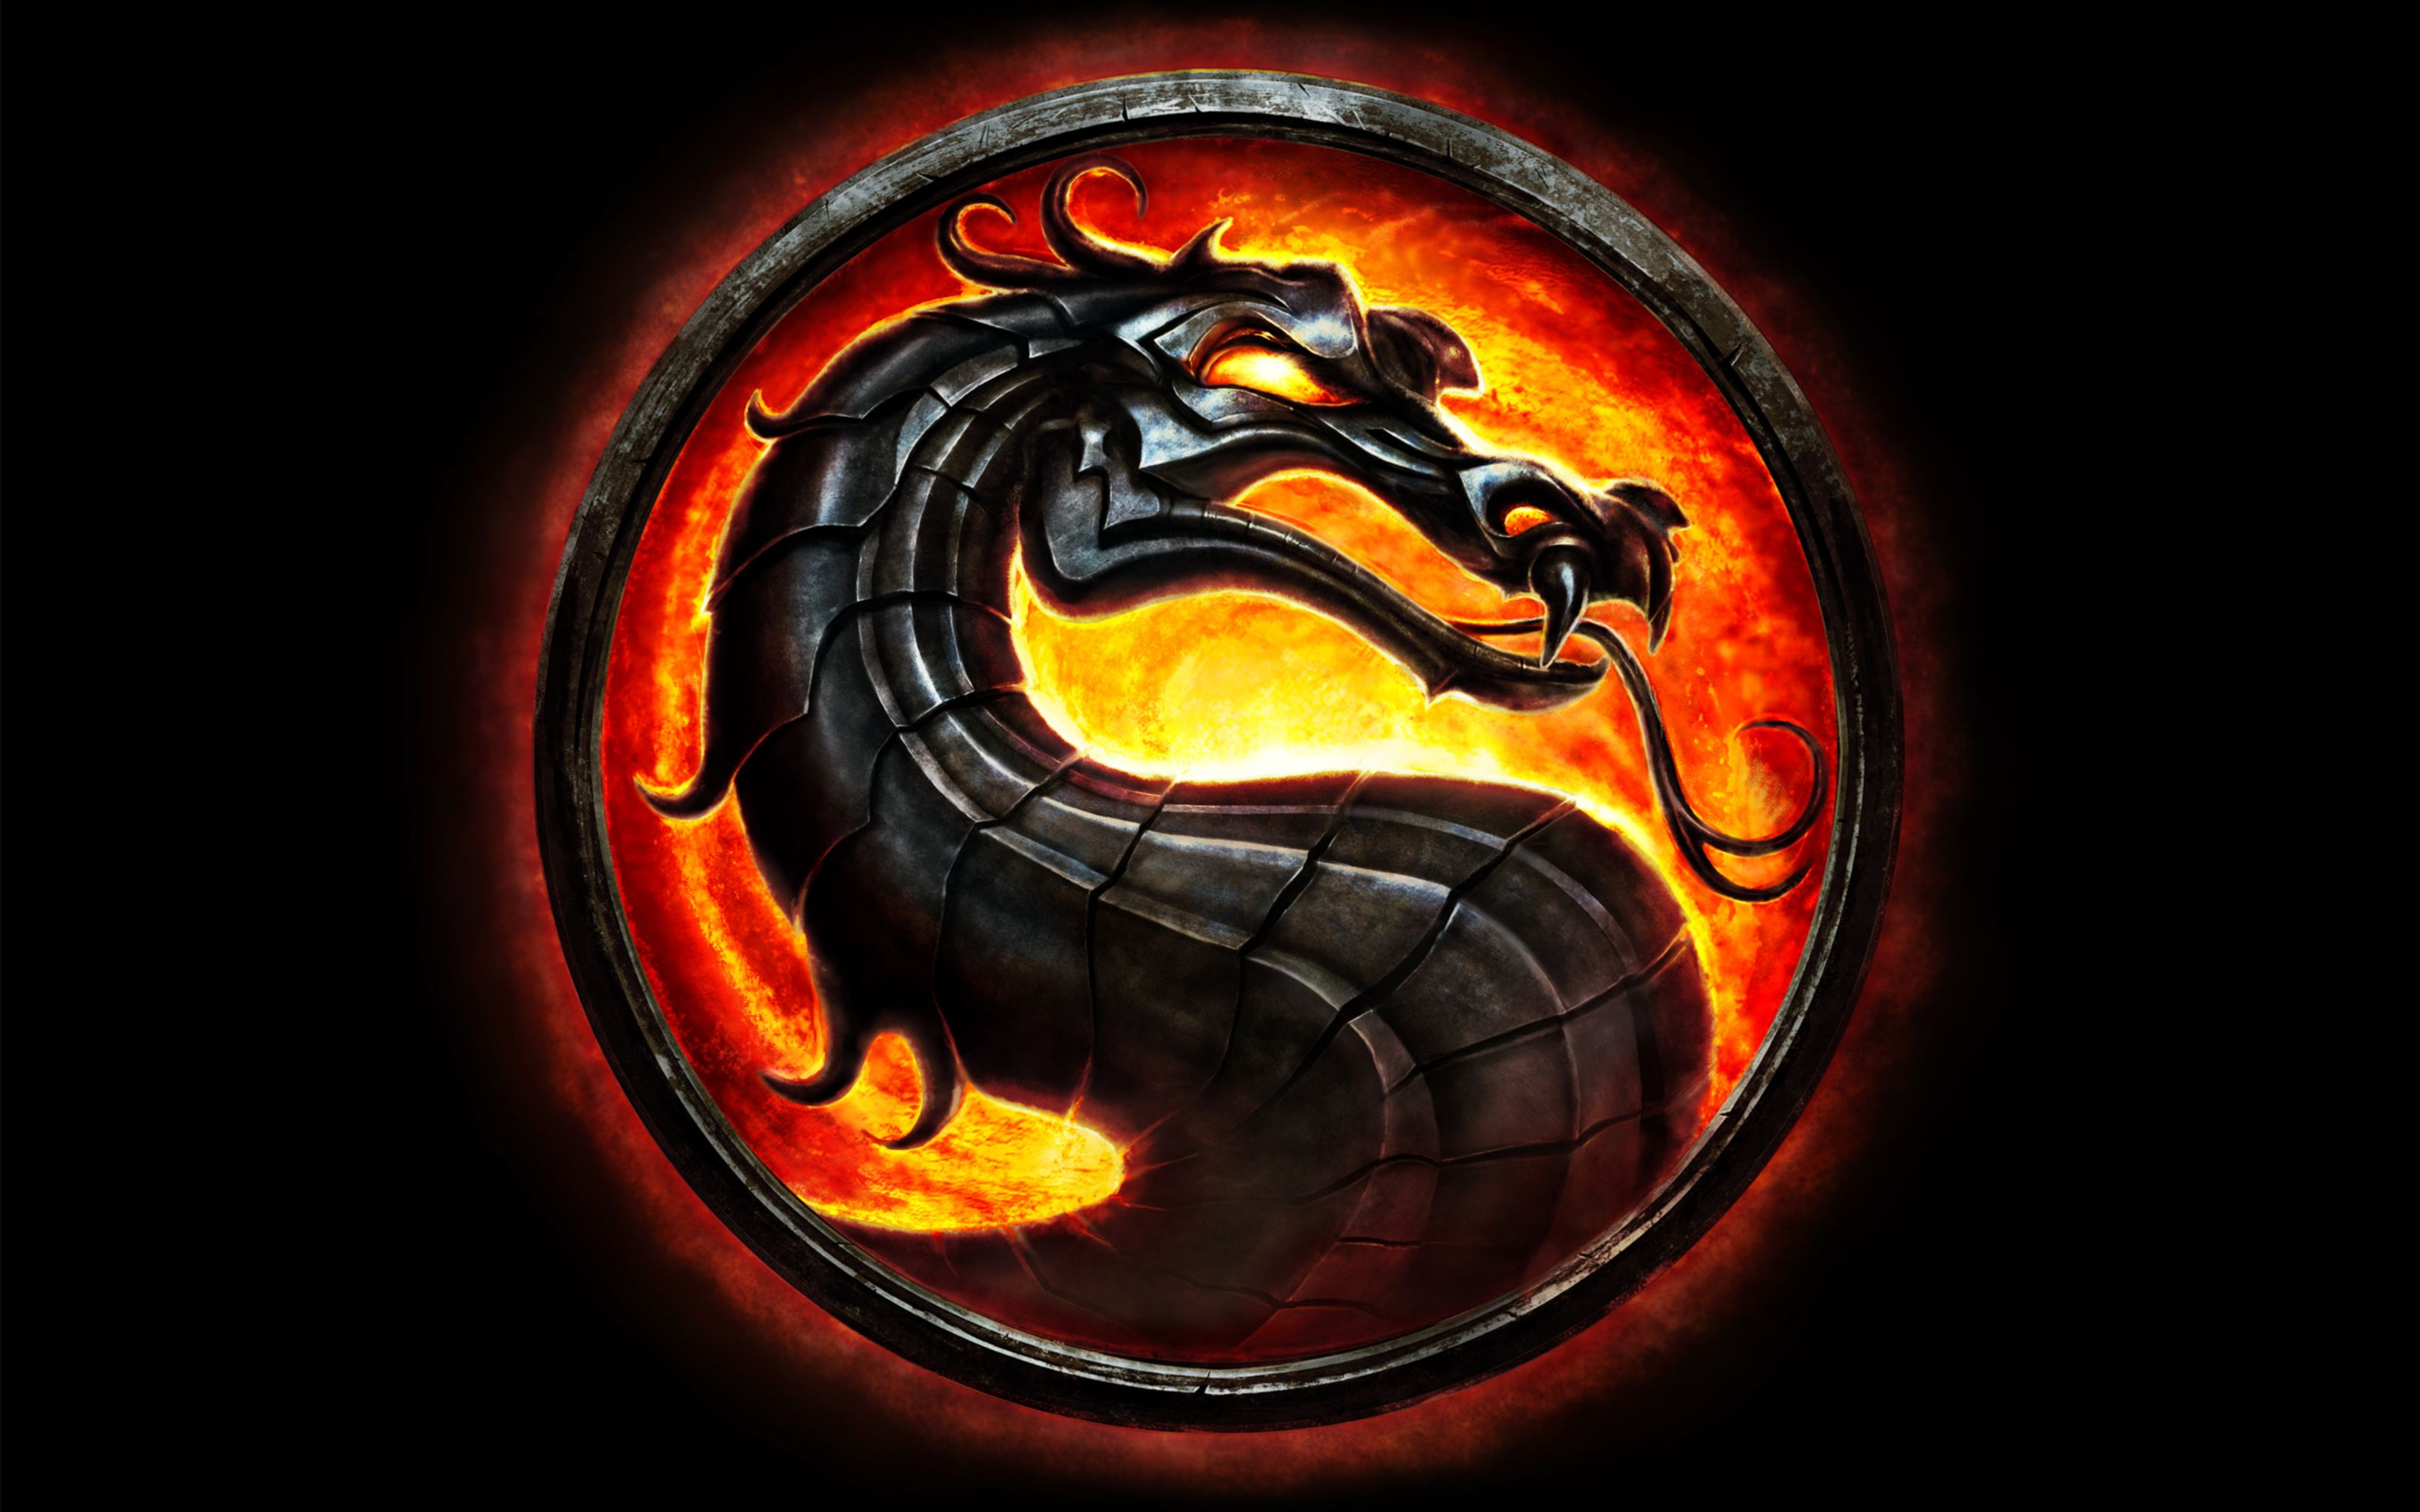 Download free HD Mortal Kombat Dragon Wide Wallpaper, image